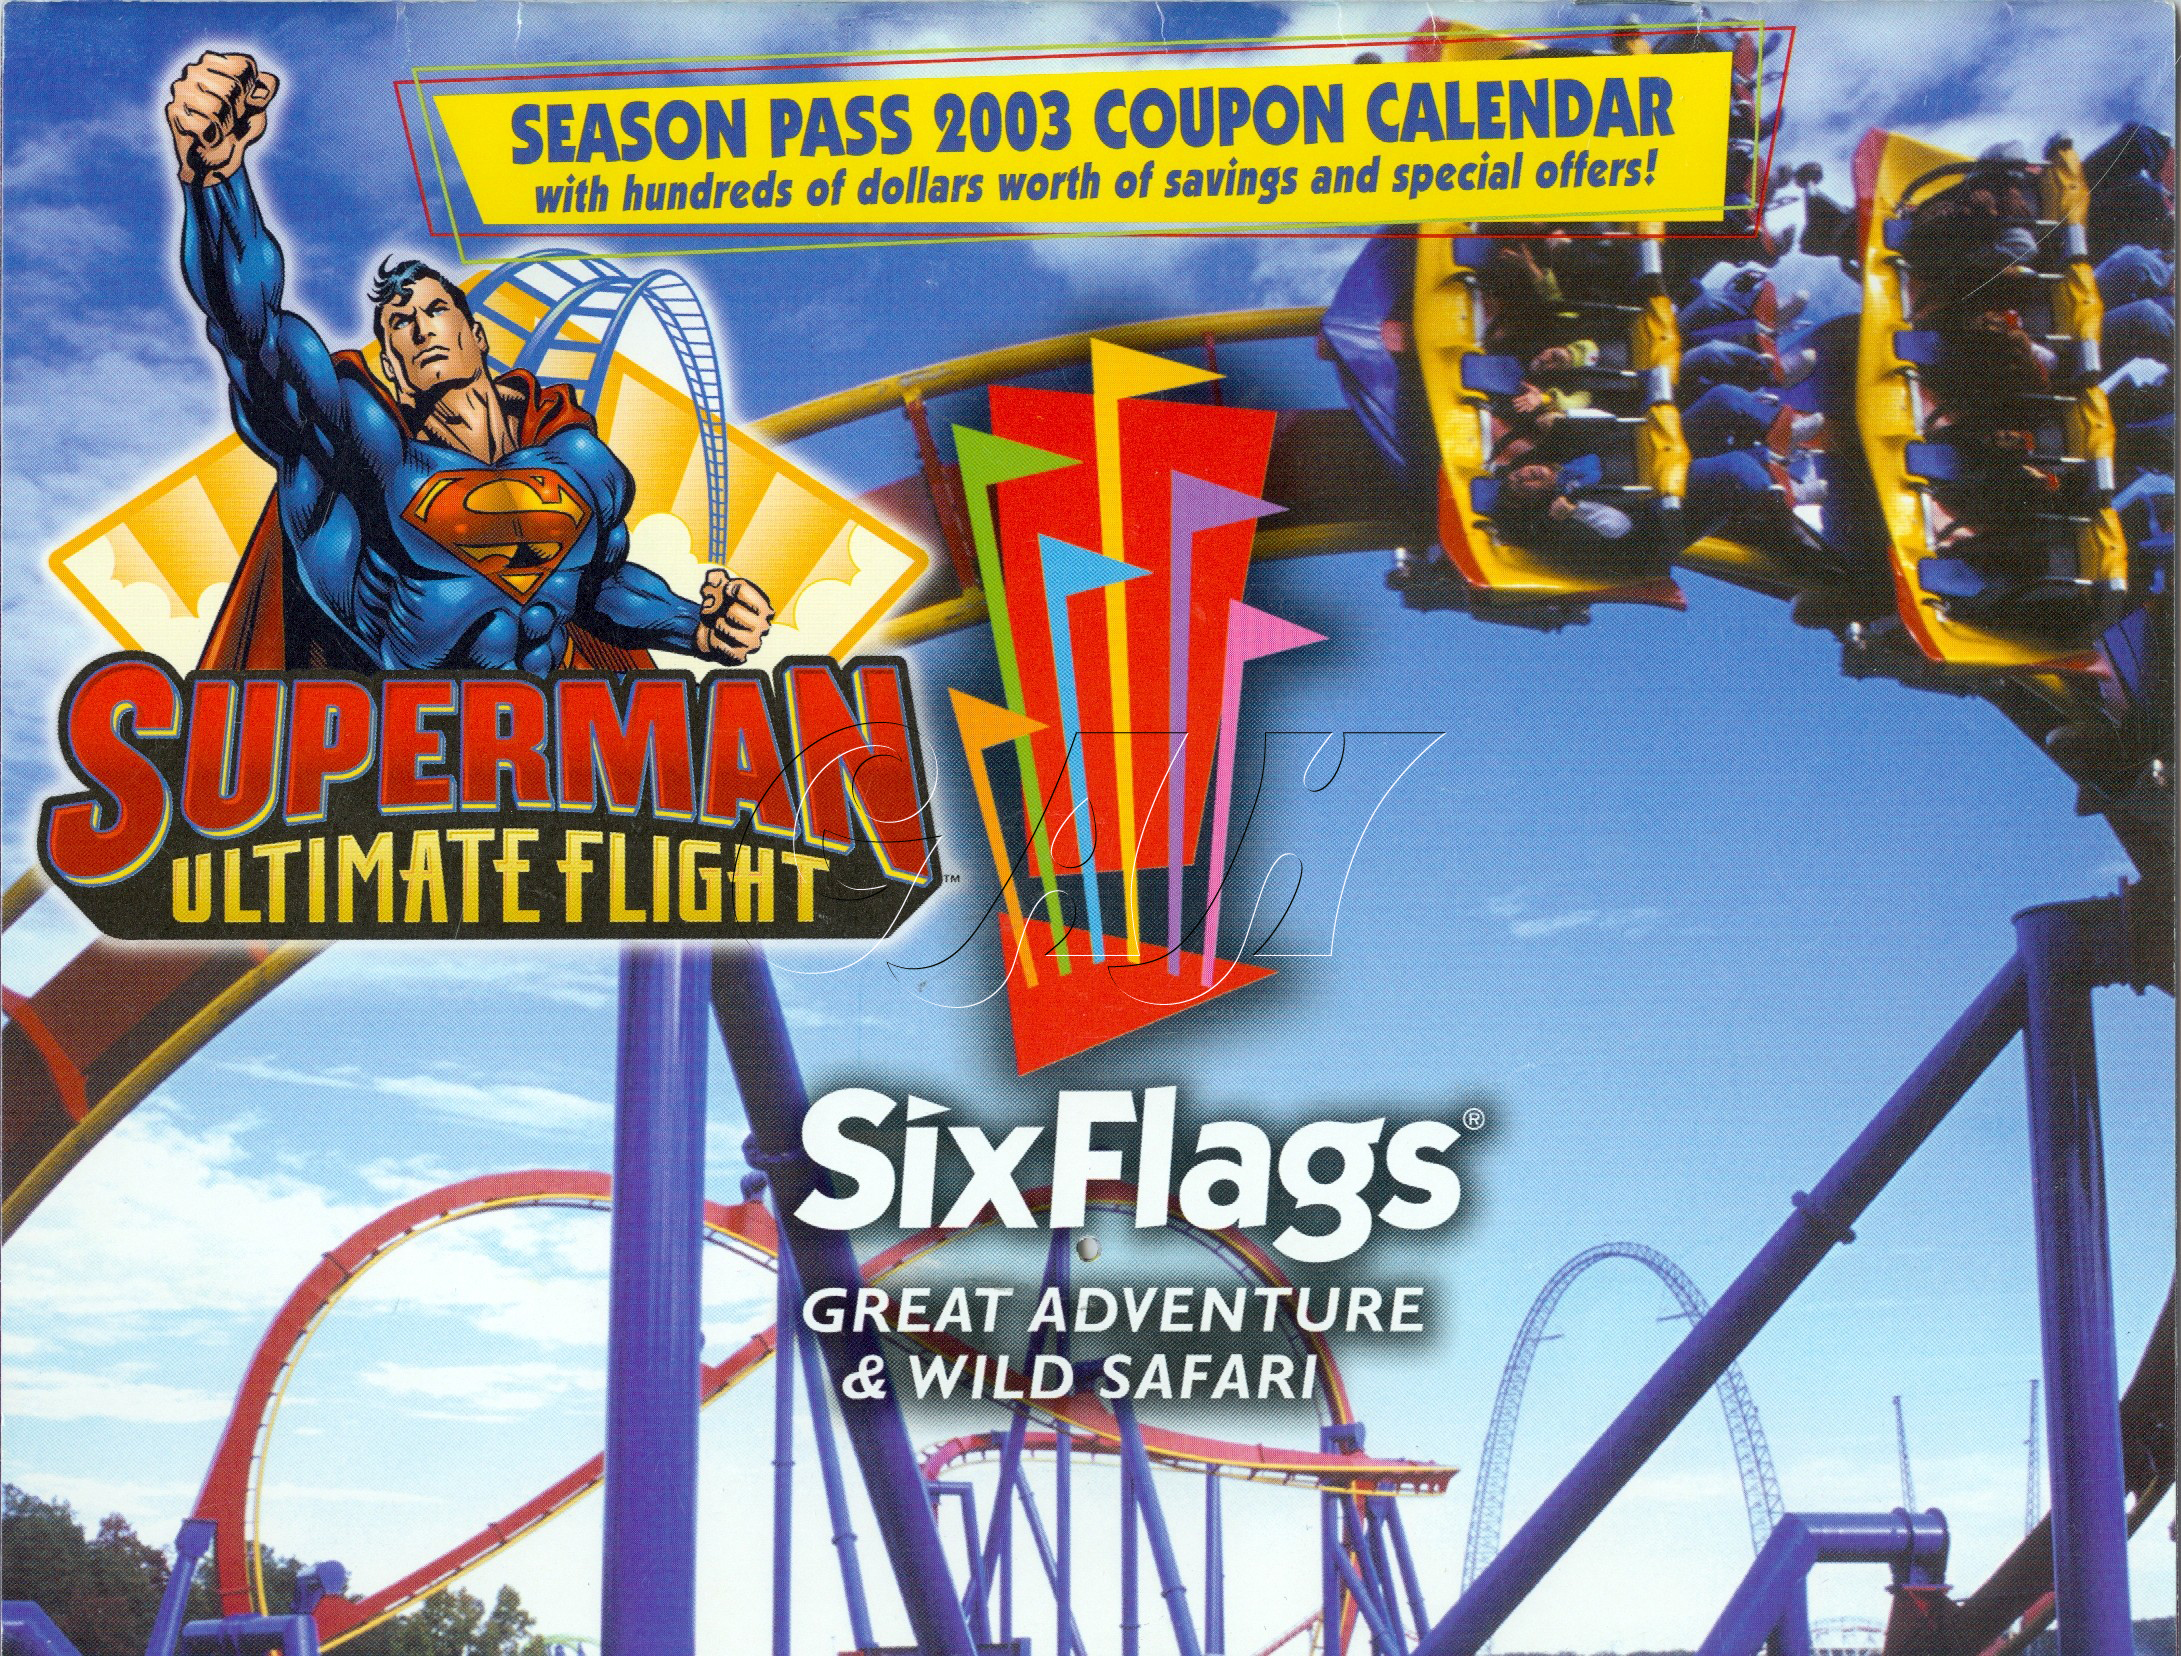 Six Flags Great Adventure Coupons, Savings and Theme Park Description for Great Adventure boasts its impressive collection of awesome rides: the wonderful hypercoaster, Nitro, the flying coaster, Superman Ultimate Flight, and the floorless coaster, Bizarro.